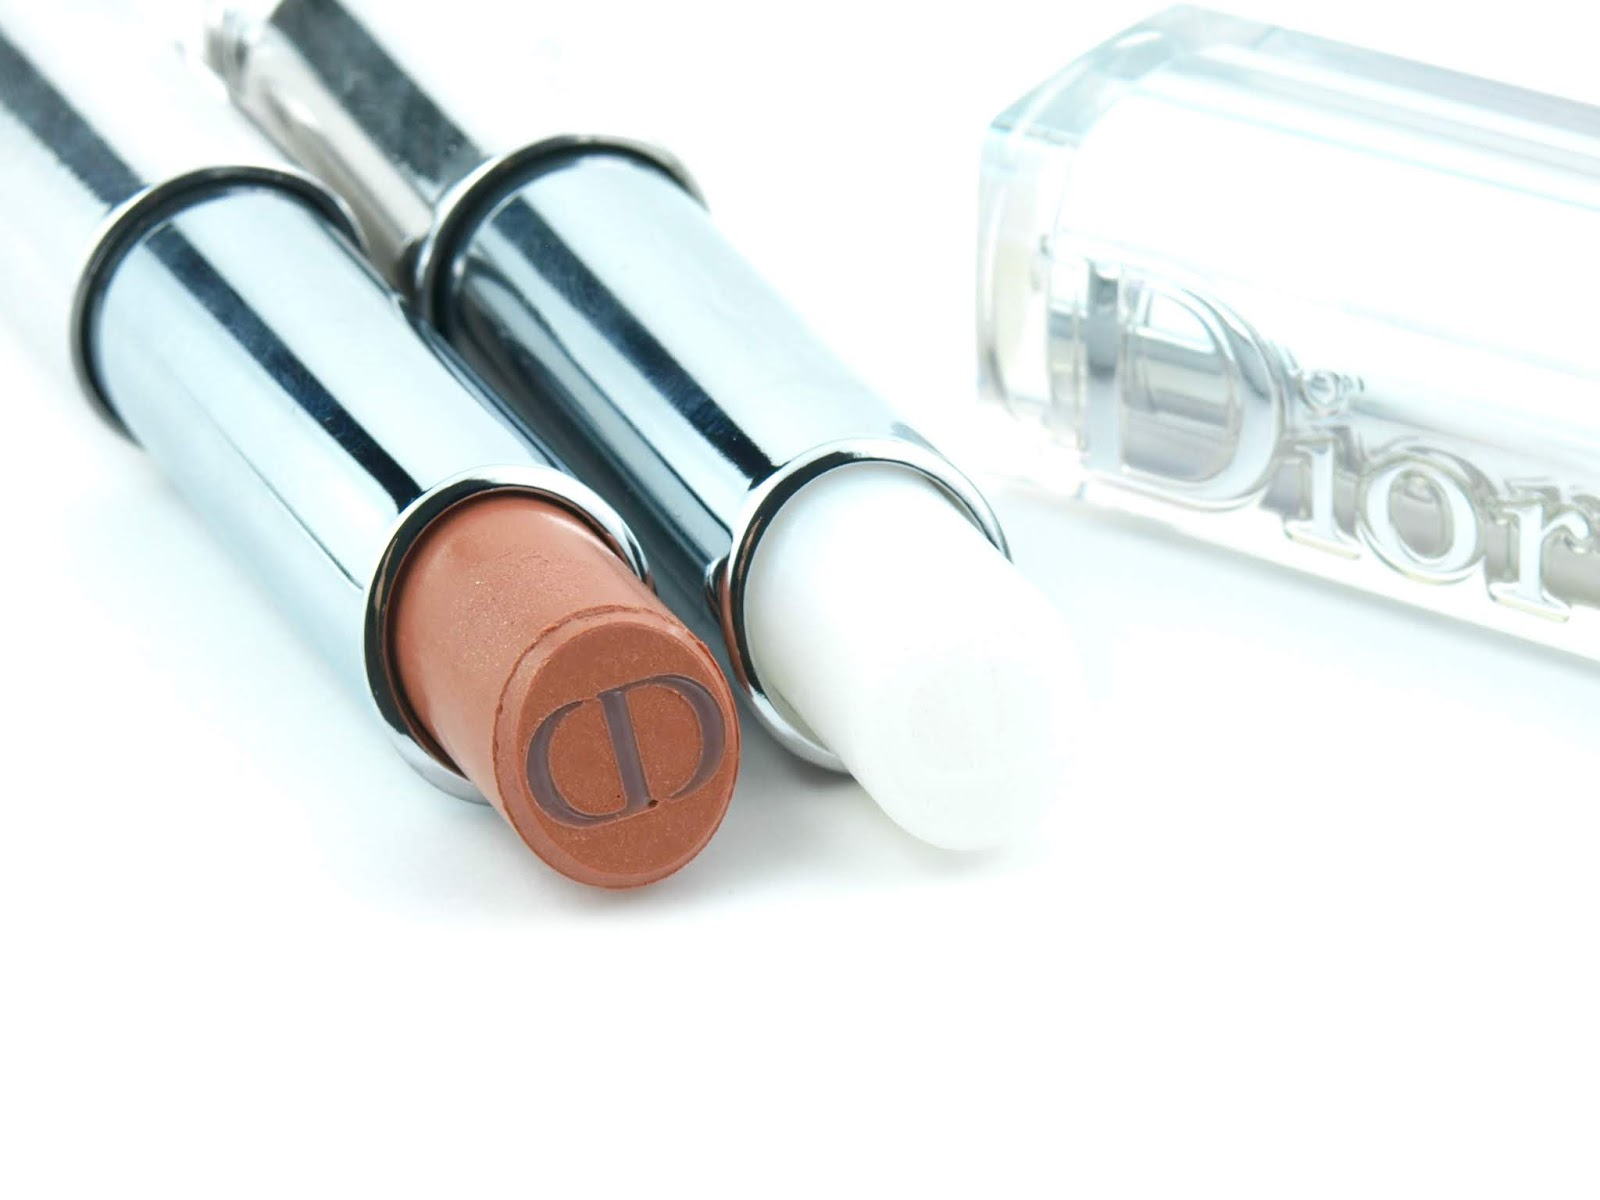 "Dior | Summer 2018 Dior Addict Lipstick in ""040 White Splash"" & ""411 Nude Chill"": Review and Swatches"